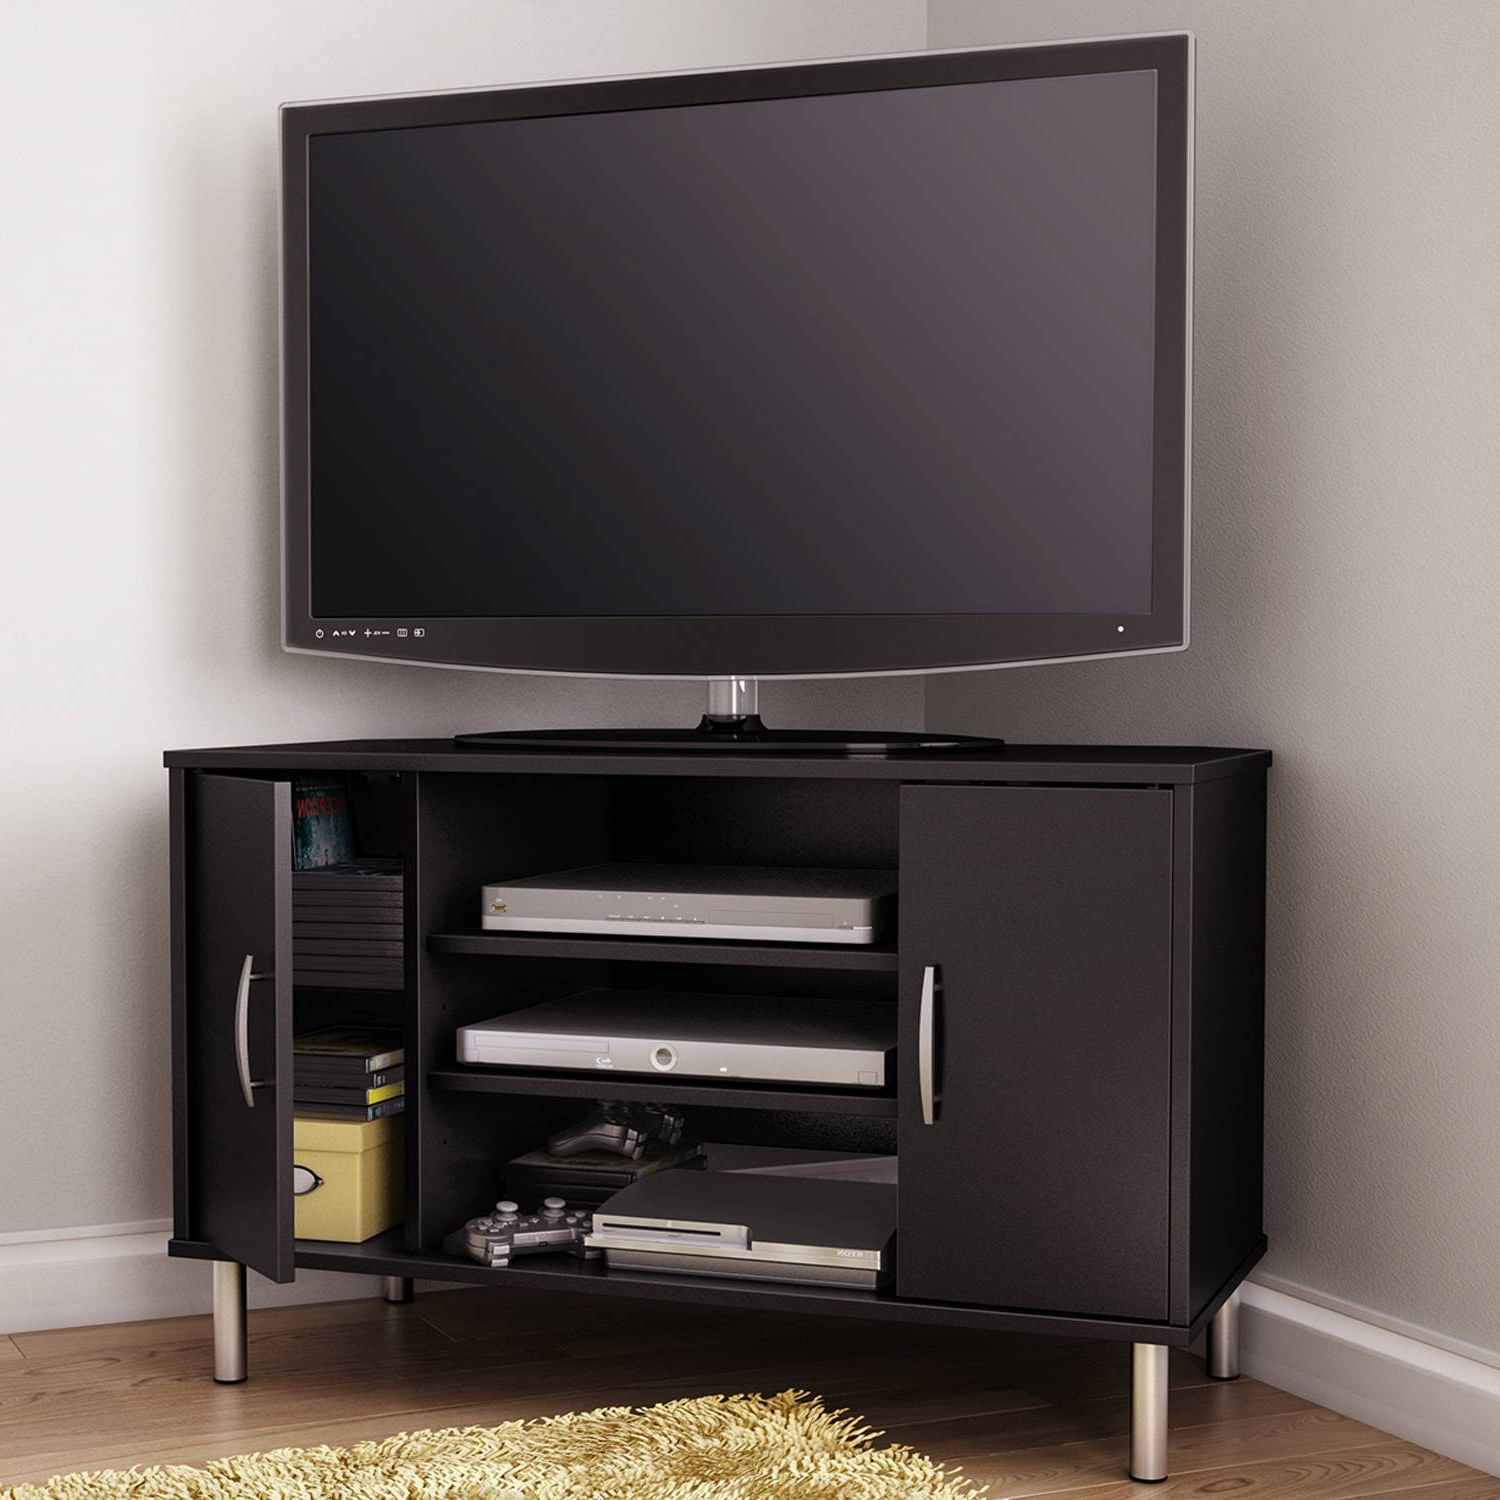 Preferred Storage Cabinets Ideas : Corner Tv Stand Designs Choosing The Throughout Triangular Tv Stands (Gallery 1 of 20)